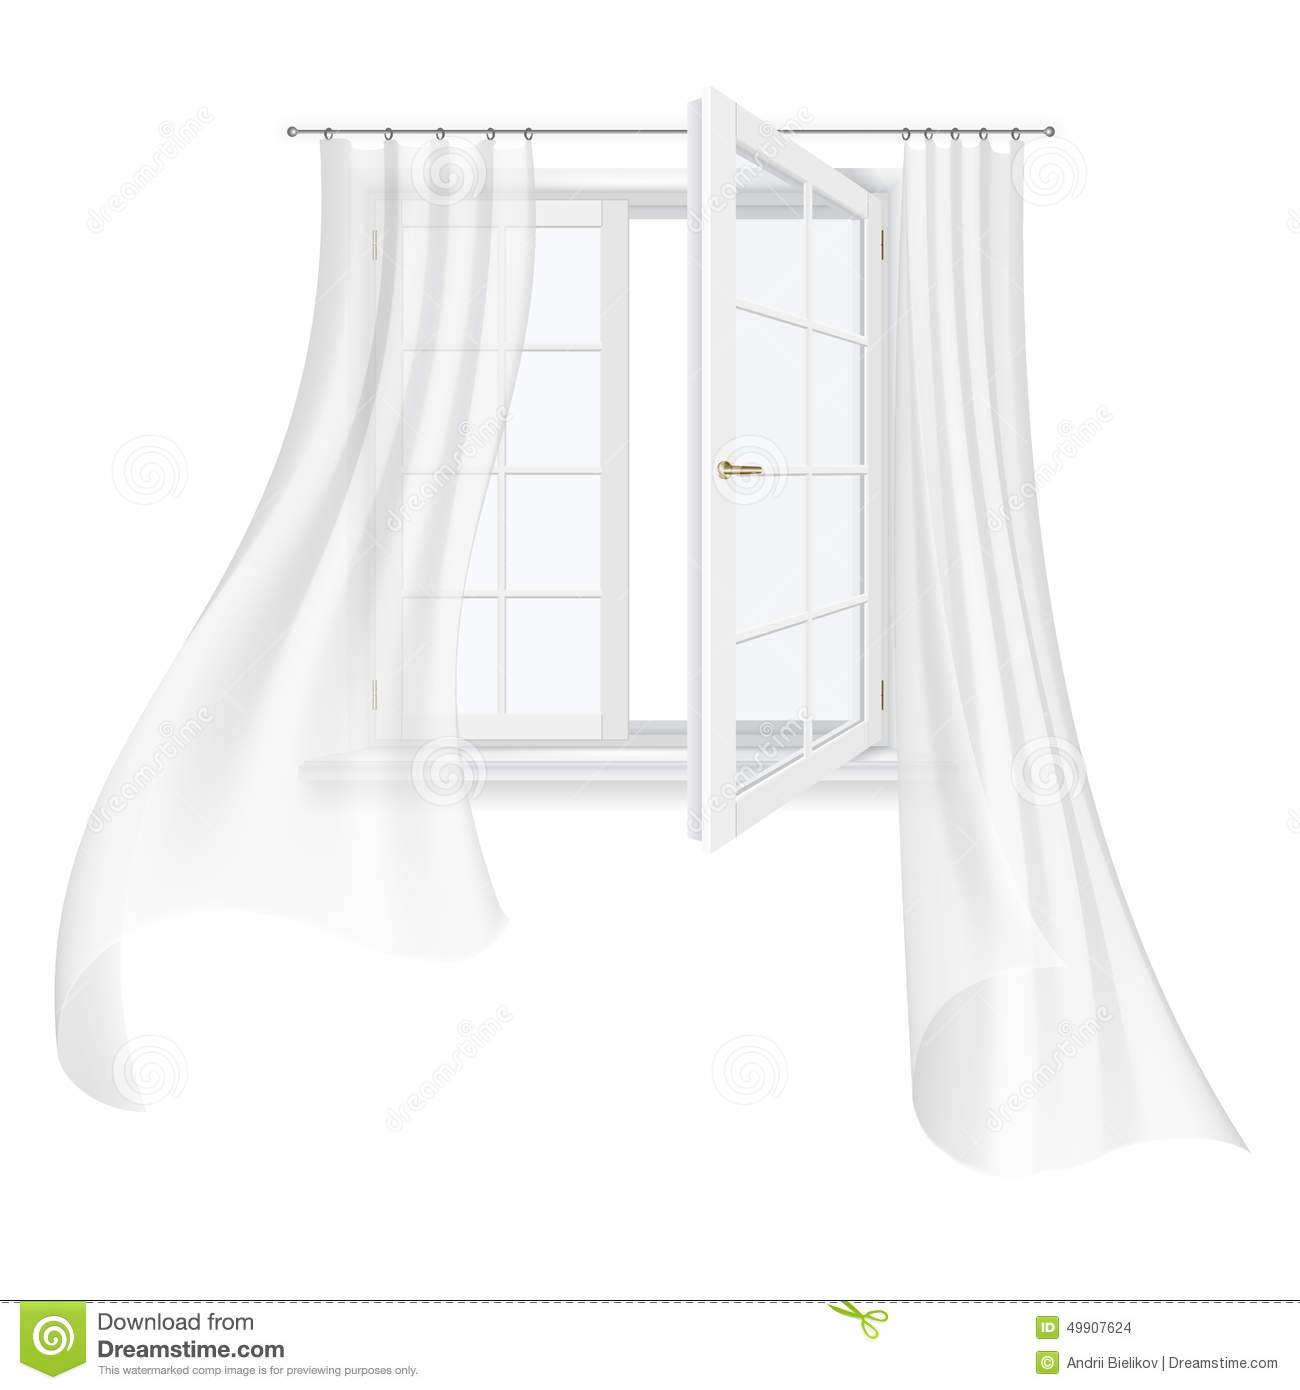 Open Window With Curtains - Open transparent white window